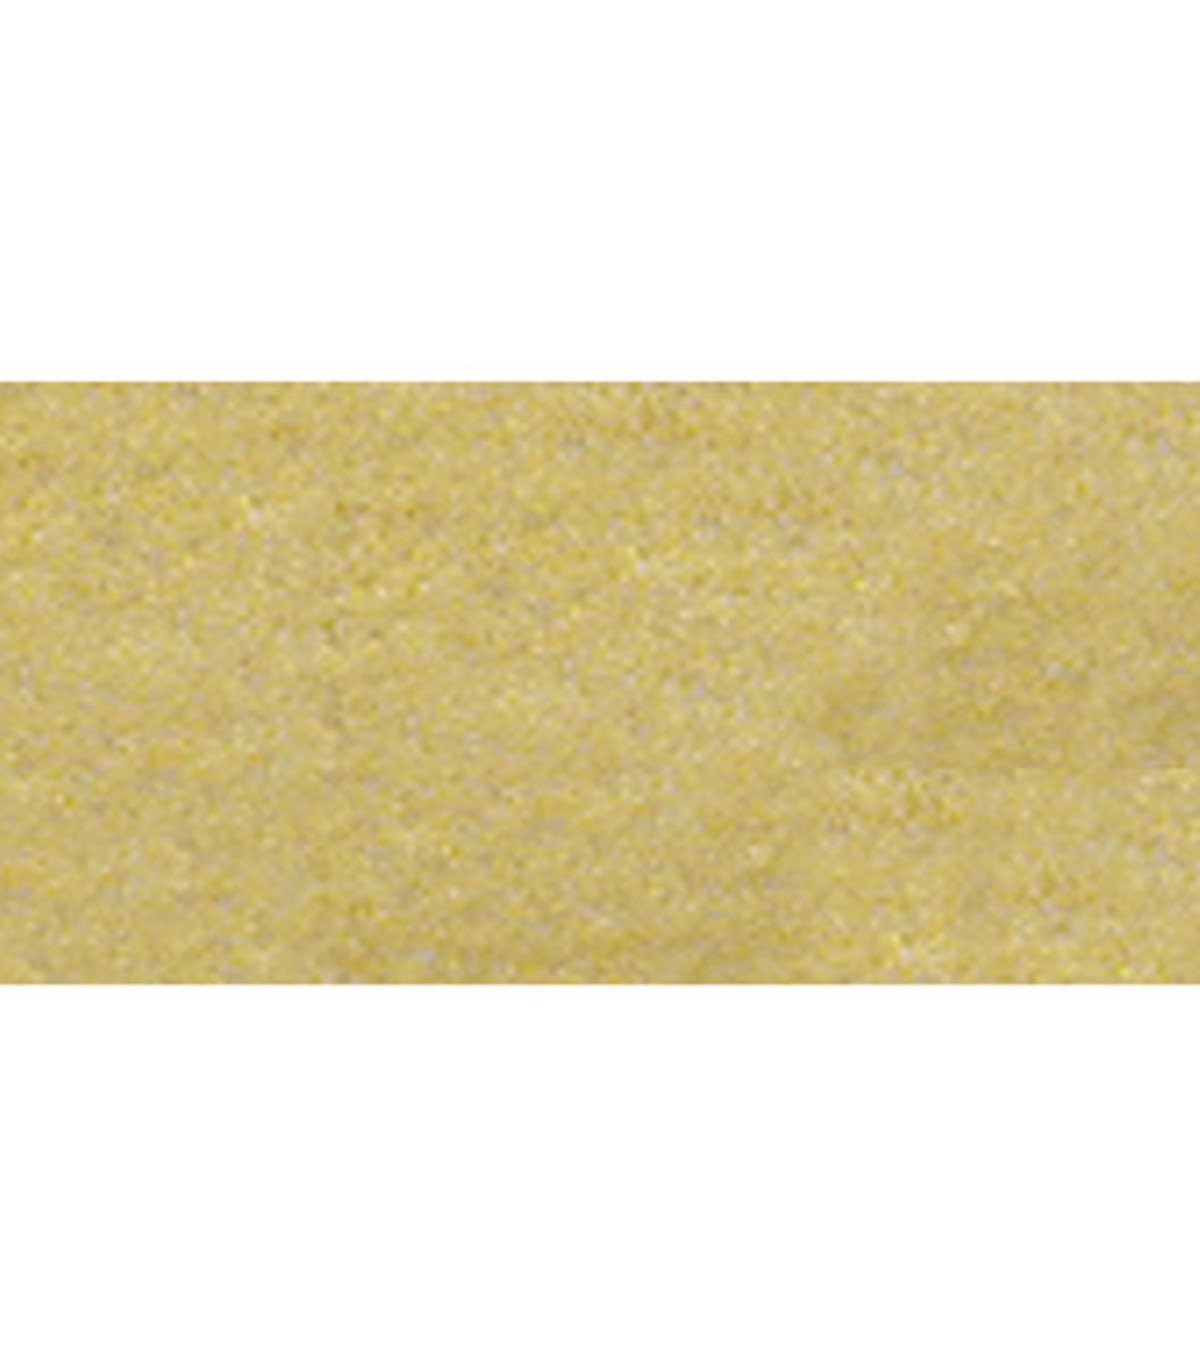 Ancient gold Embossing Powder 1 Ounce Princess gold